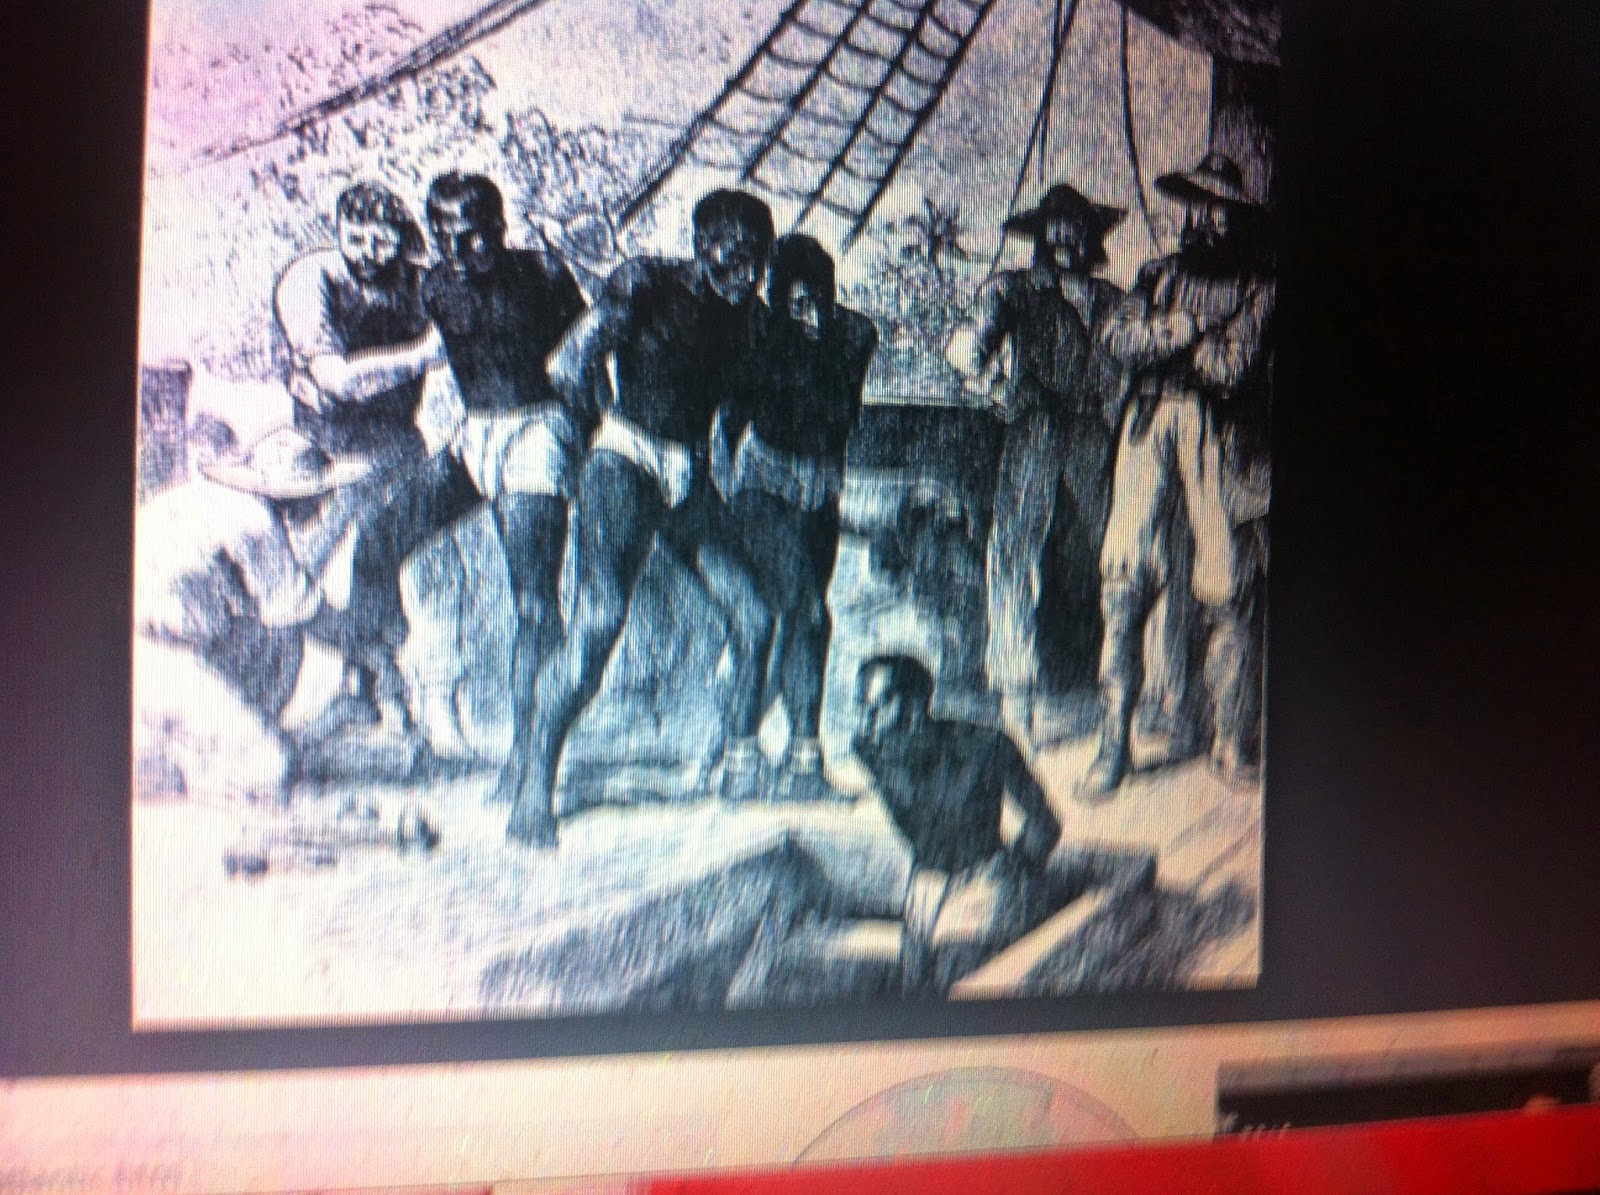 dutch slave trade The dutch slave coast (dutch: slavenkust) refers to the trading posts of the dutch west india company on the slave coast, which lie in contemporary ghana, benin, togo and nigeria the primary purpose of the trading post was to supply slaves for the plantation colonies in the americas.